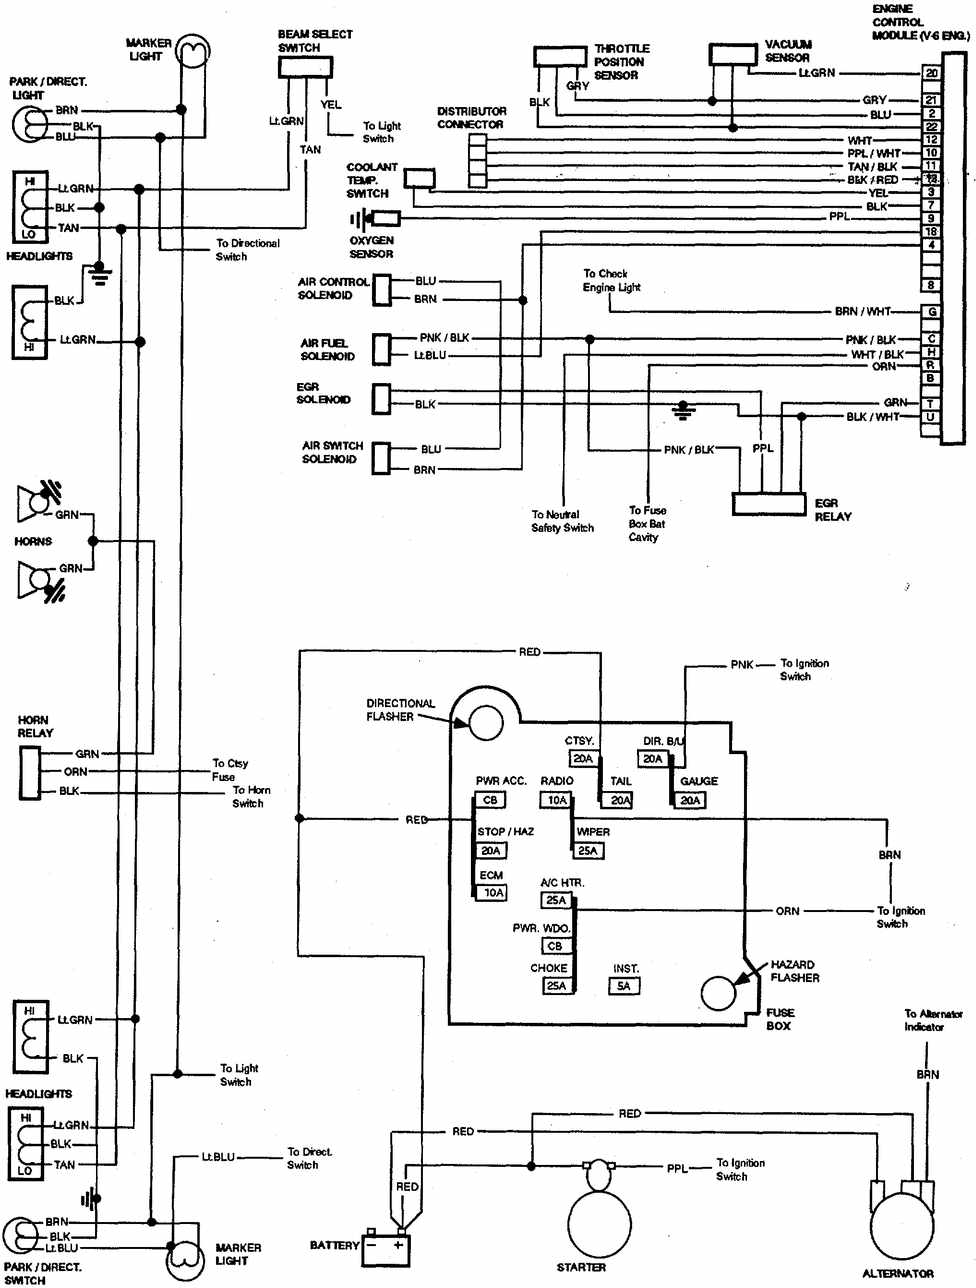 Chevrolet V Trucks Electrical Wiring Diagram on 1998 Toyota Supra Fuse Diagram